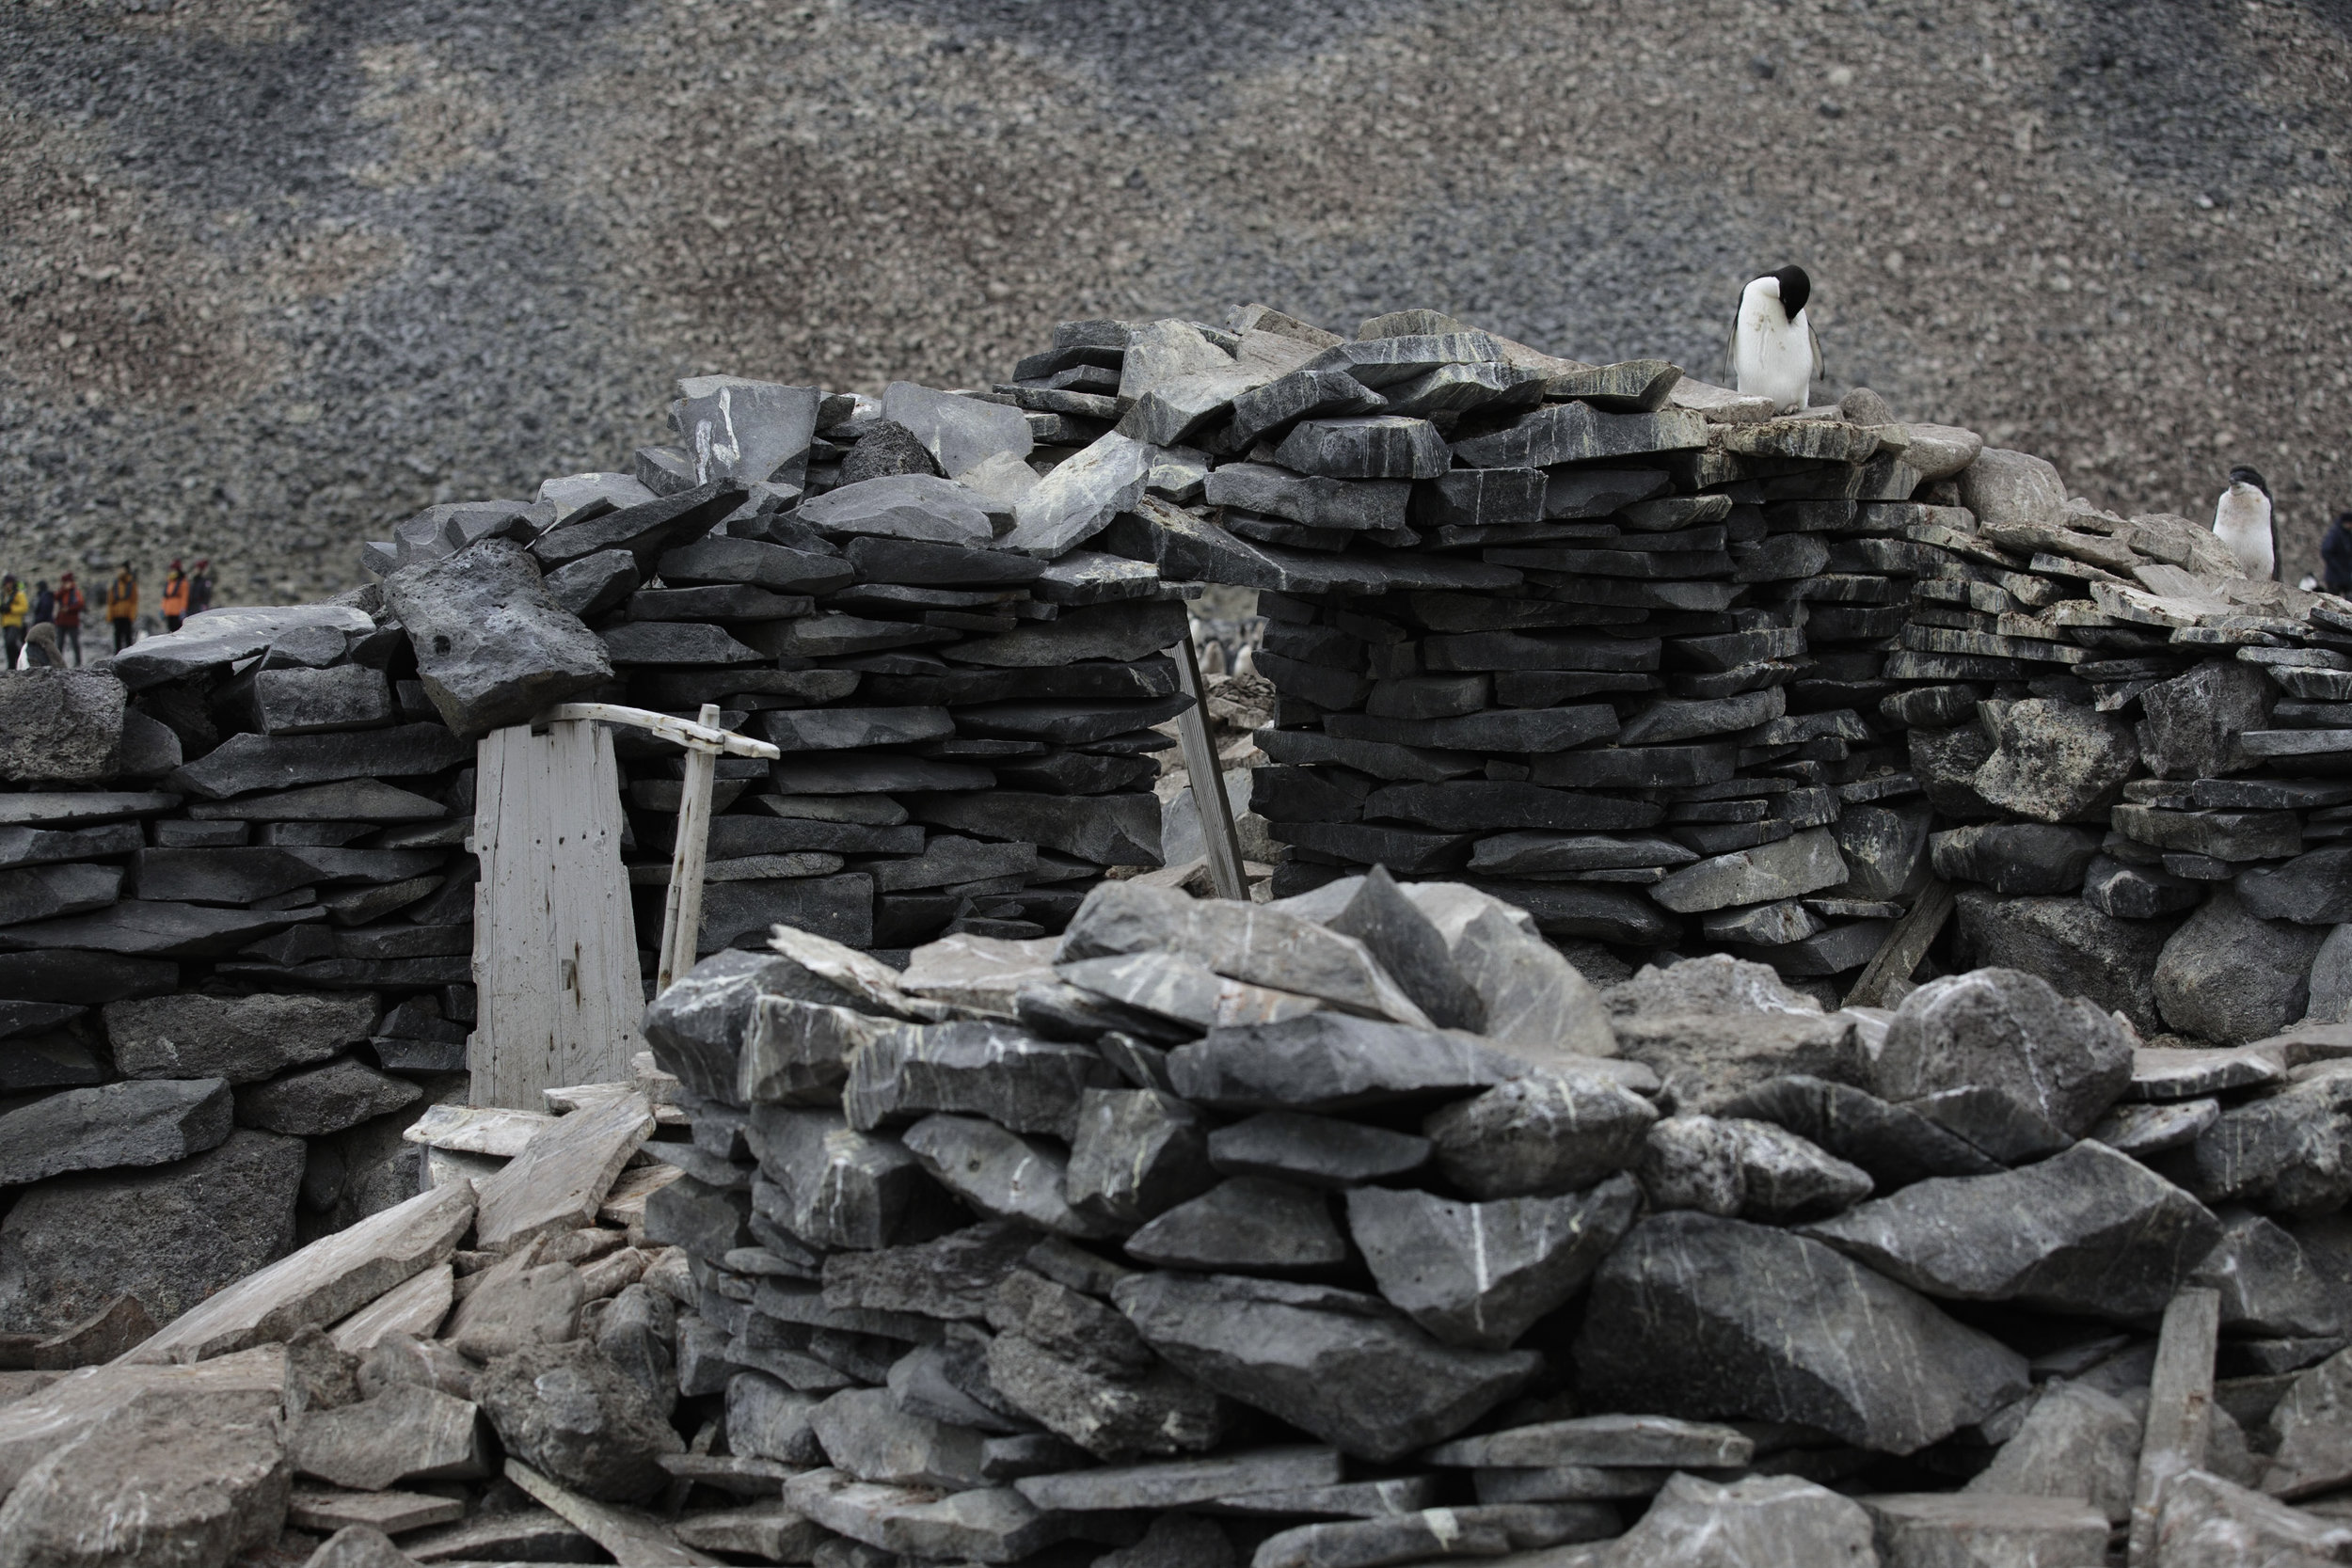 The remains of Larsen's hut on Paulet Island where the men overwintered, unintentionally, on a diet of penguin.